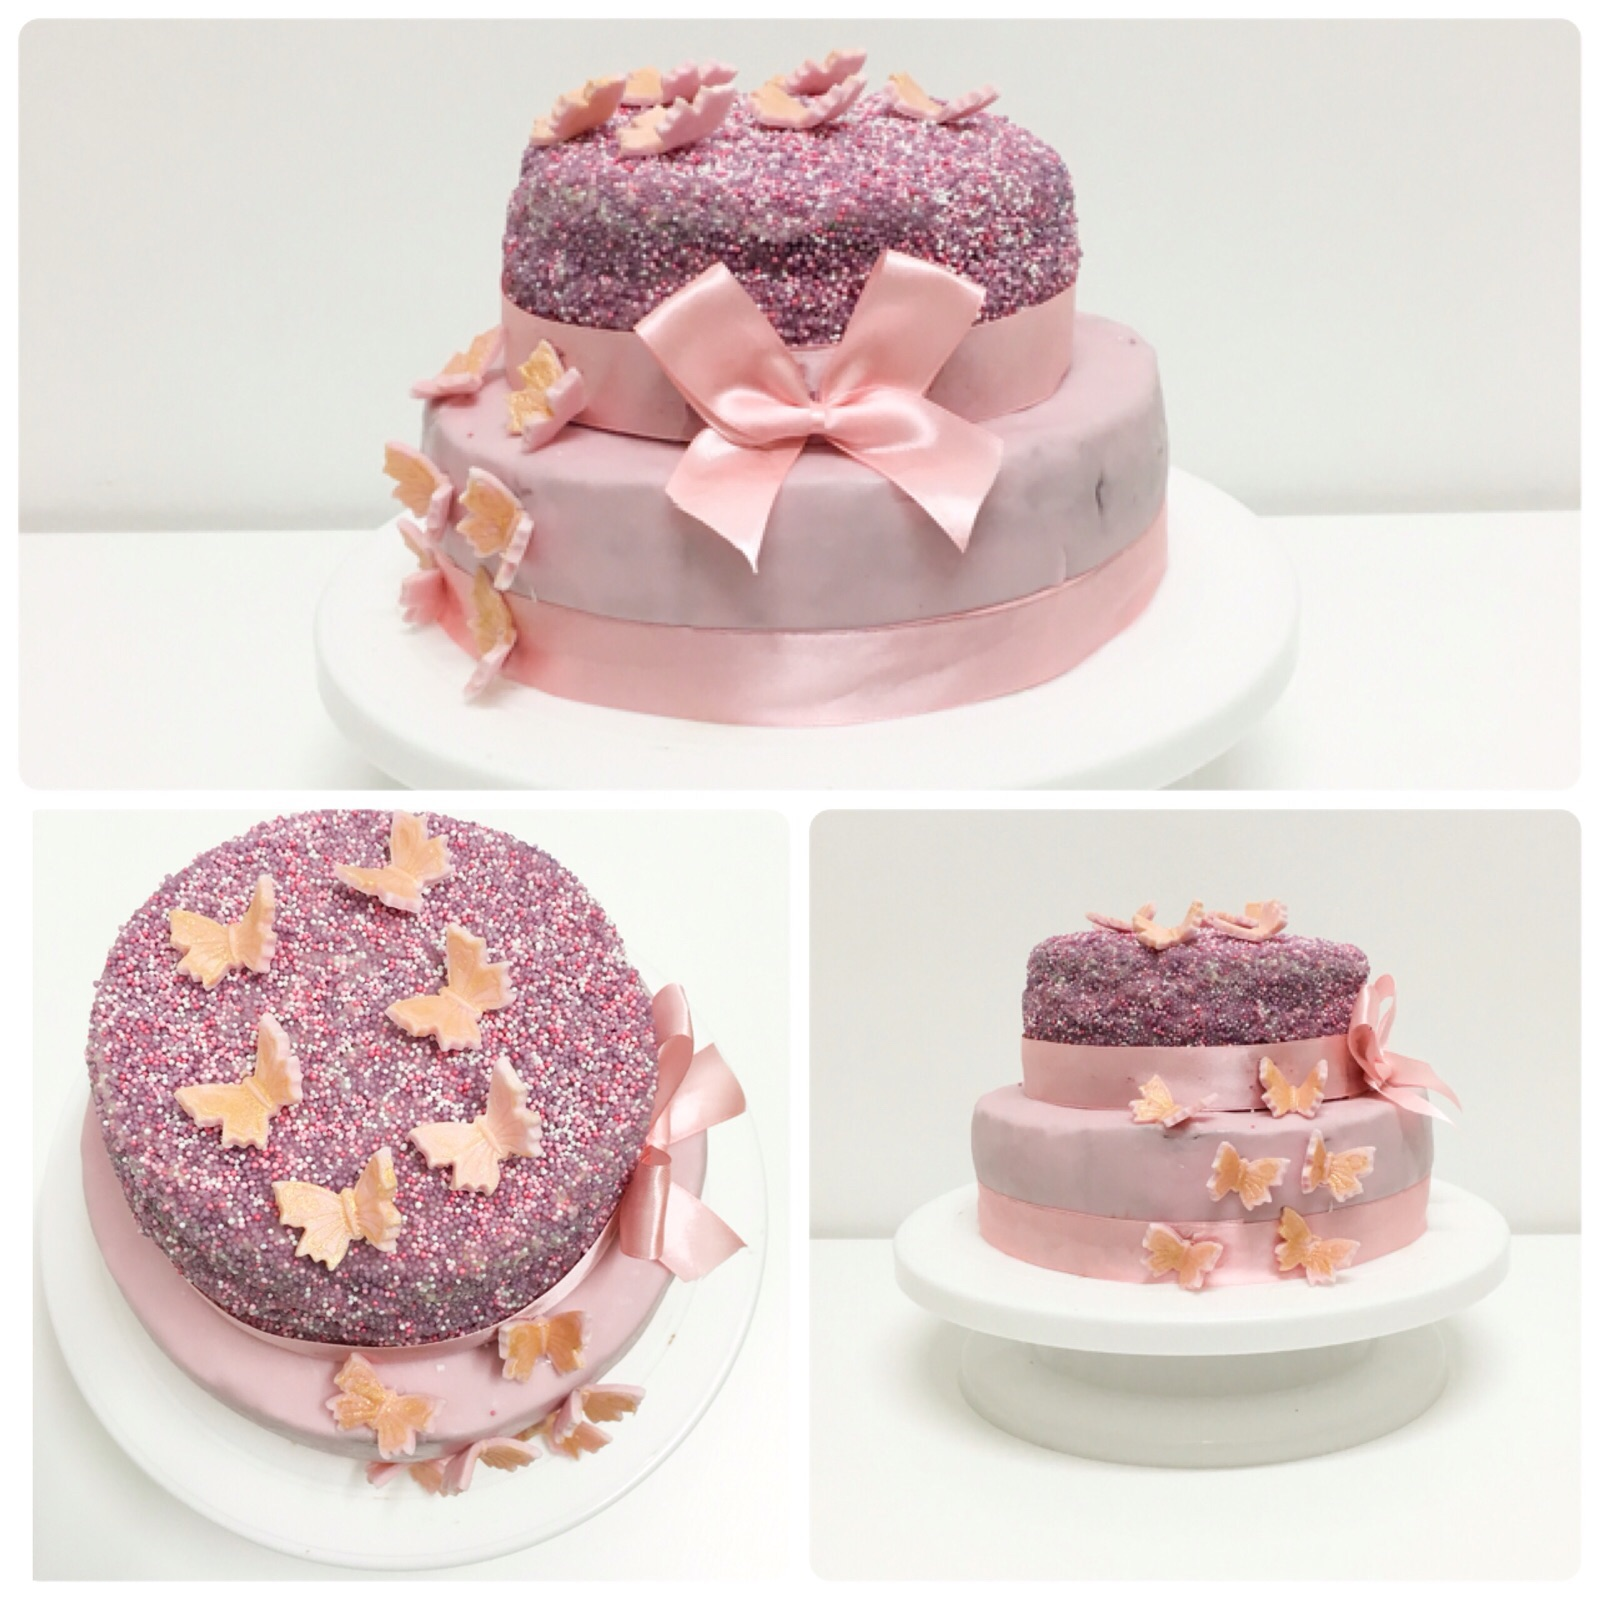 2 Stockige Fondant Torte In Lila Rose Love My Kitchen Leckere